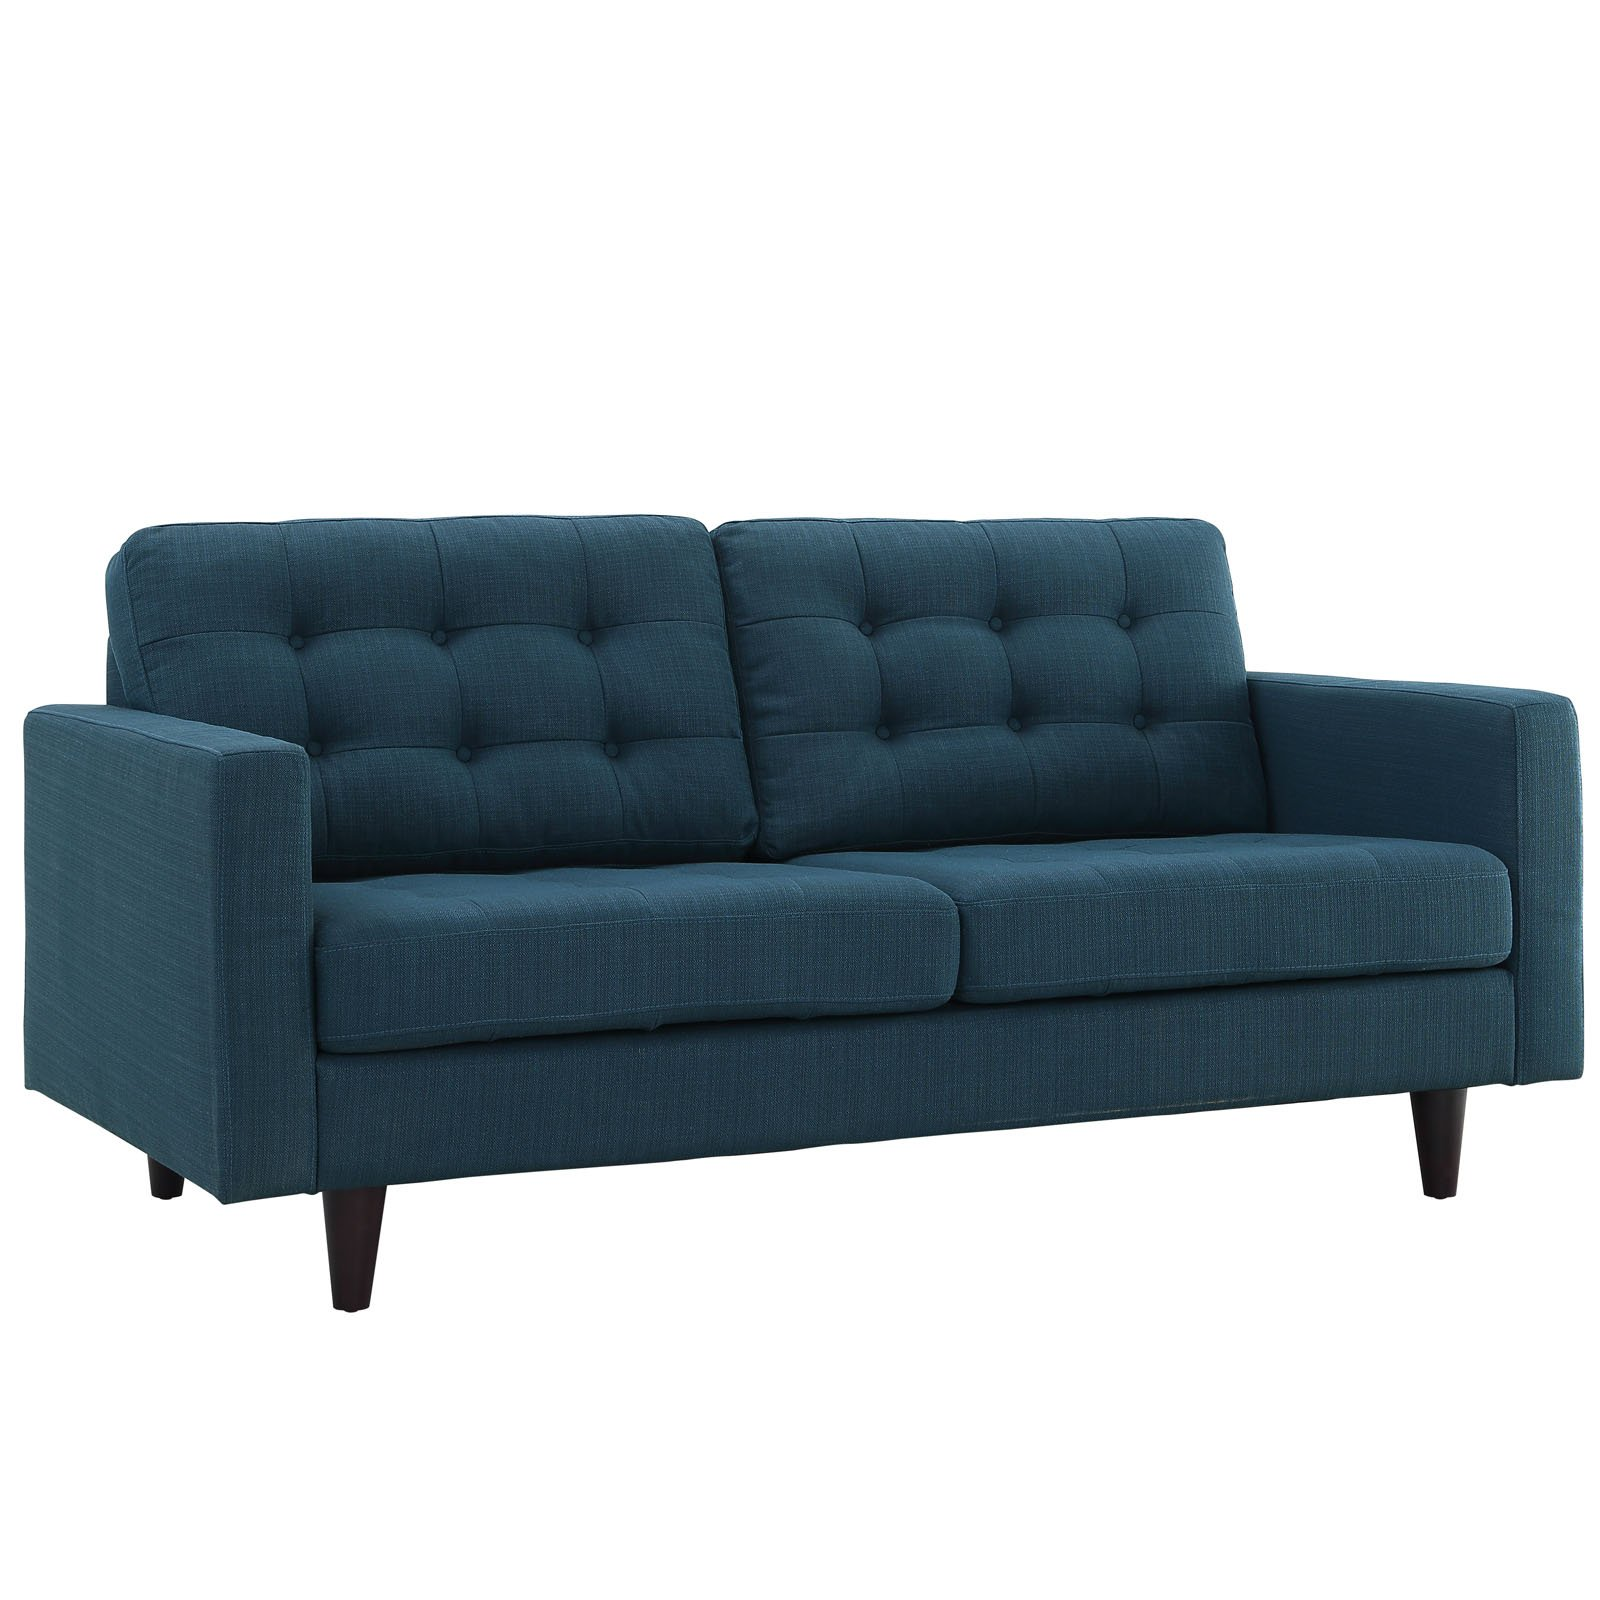 Modway Empress Mid-Century Modern Upholstered Fabric Loveseat In Azure by Modway (Image #3)